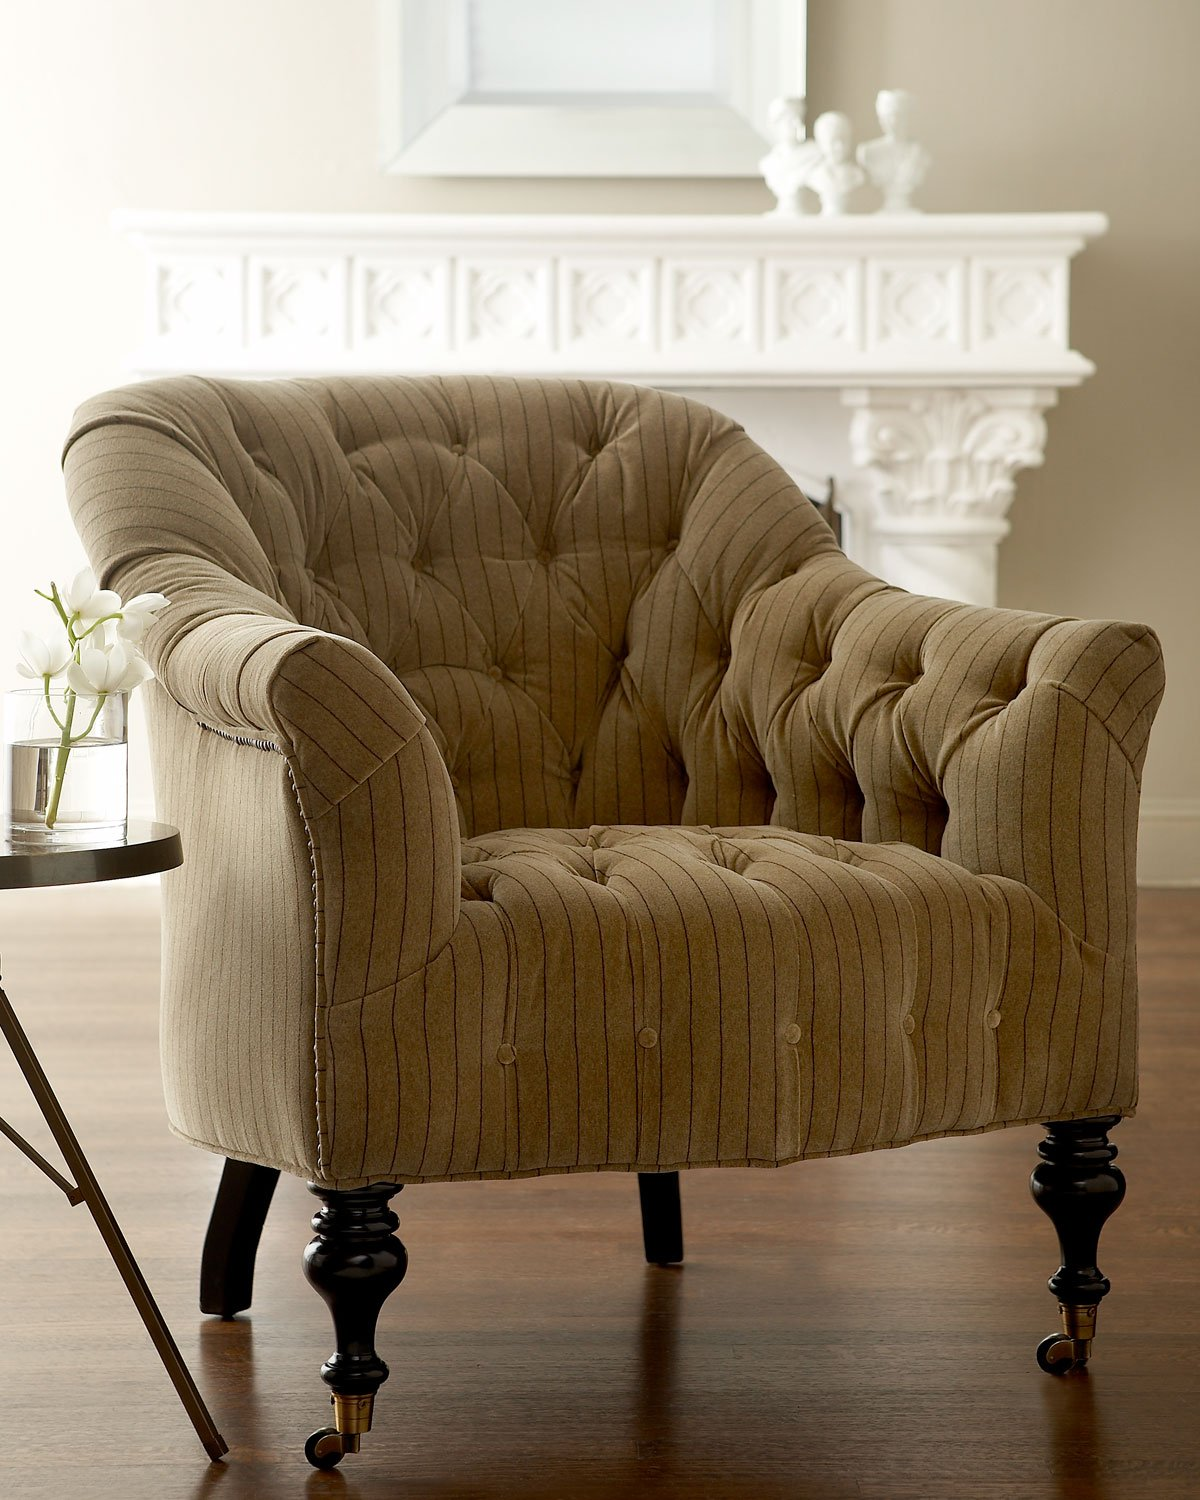 Redoubtable Hickory Sofa | Miraculous Old Hickory Tannery